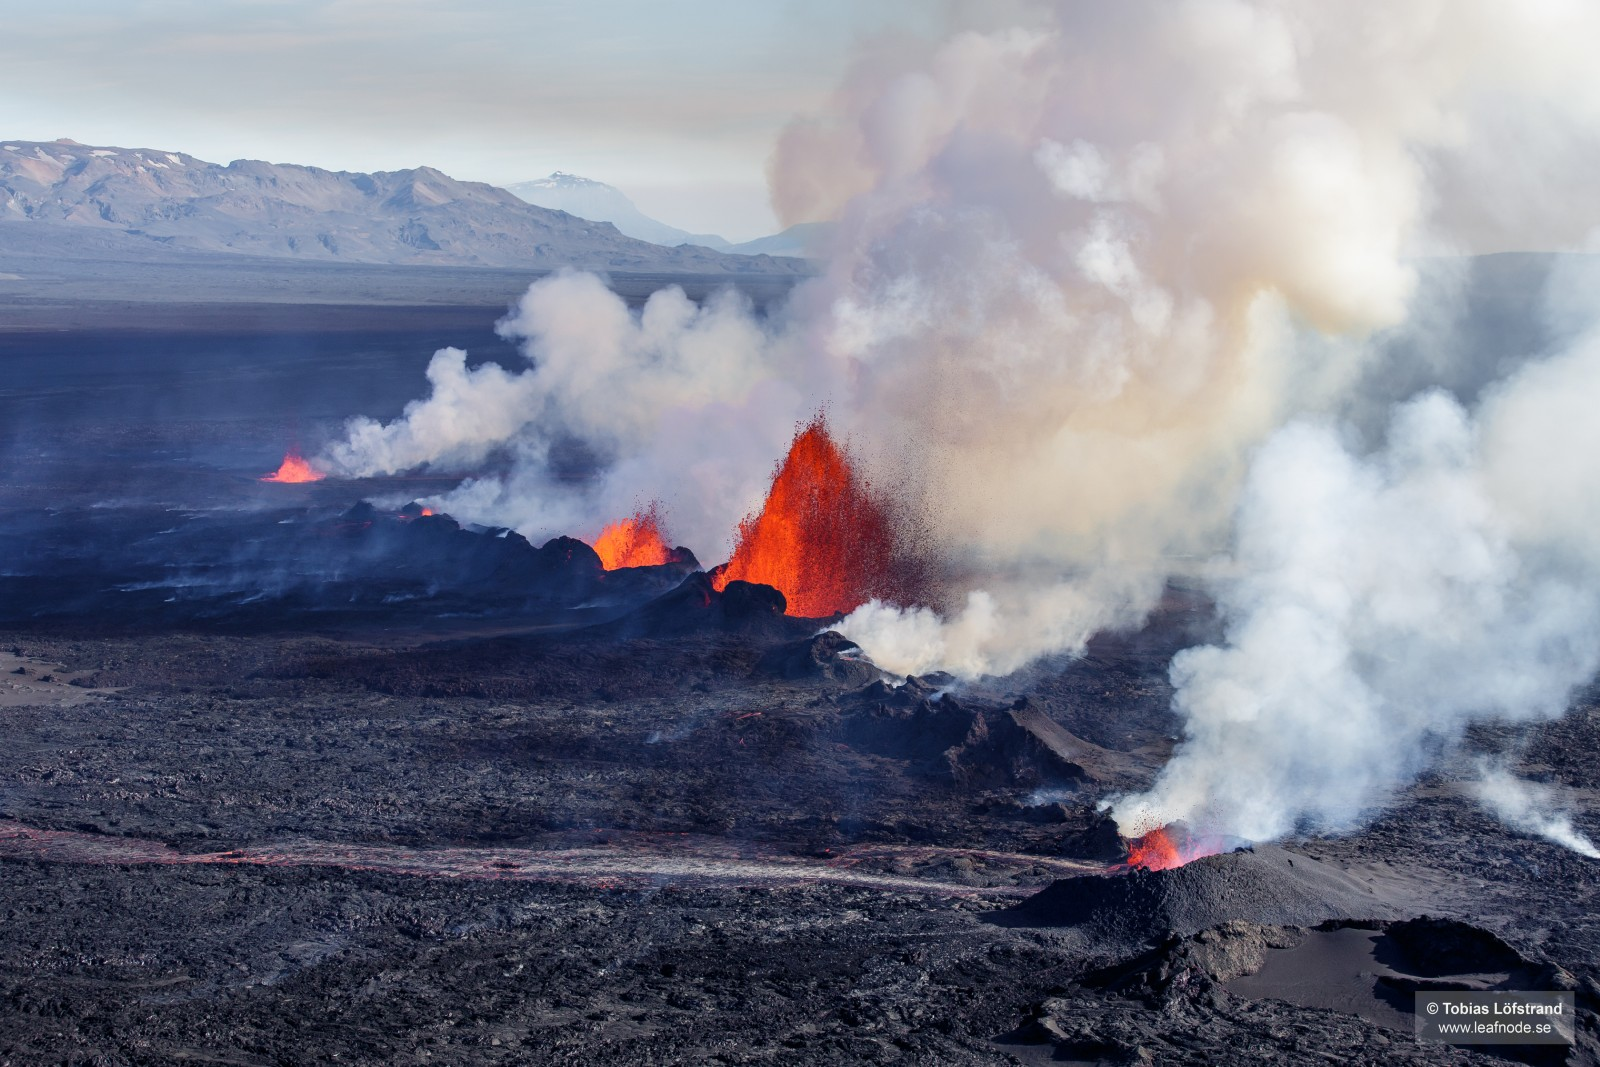 The fountains of lava accompanied by clouds of steam and sulphur-dioxide. The magma flowed 46 km underground from Bárðarbunga volcano to the eventual eruption site at Holuhraun, where it erupted continuously for 6 months. Photo Credit: Tobias Löfstrand